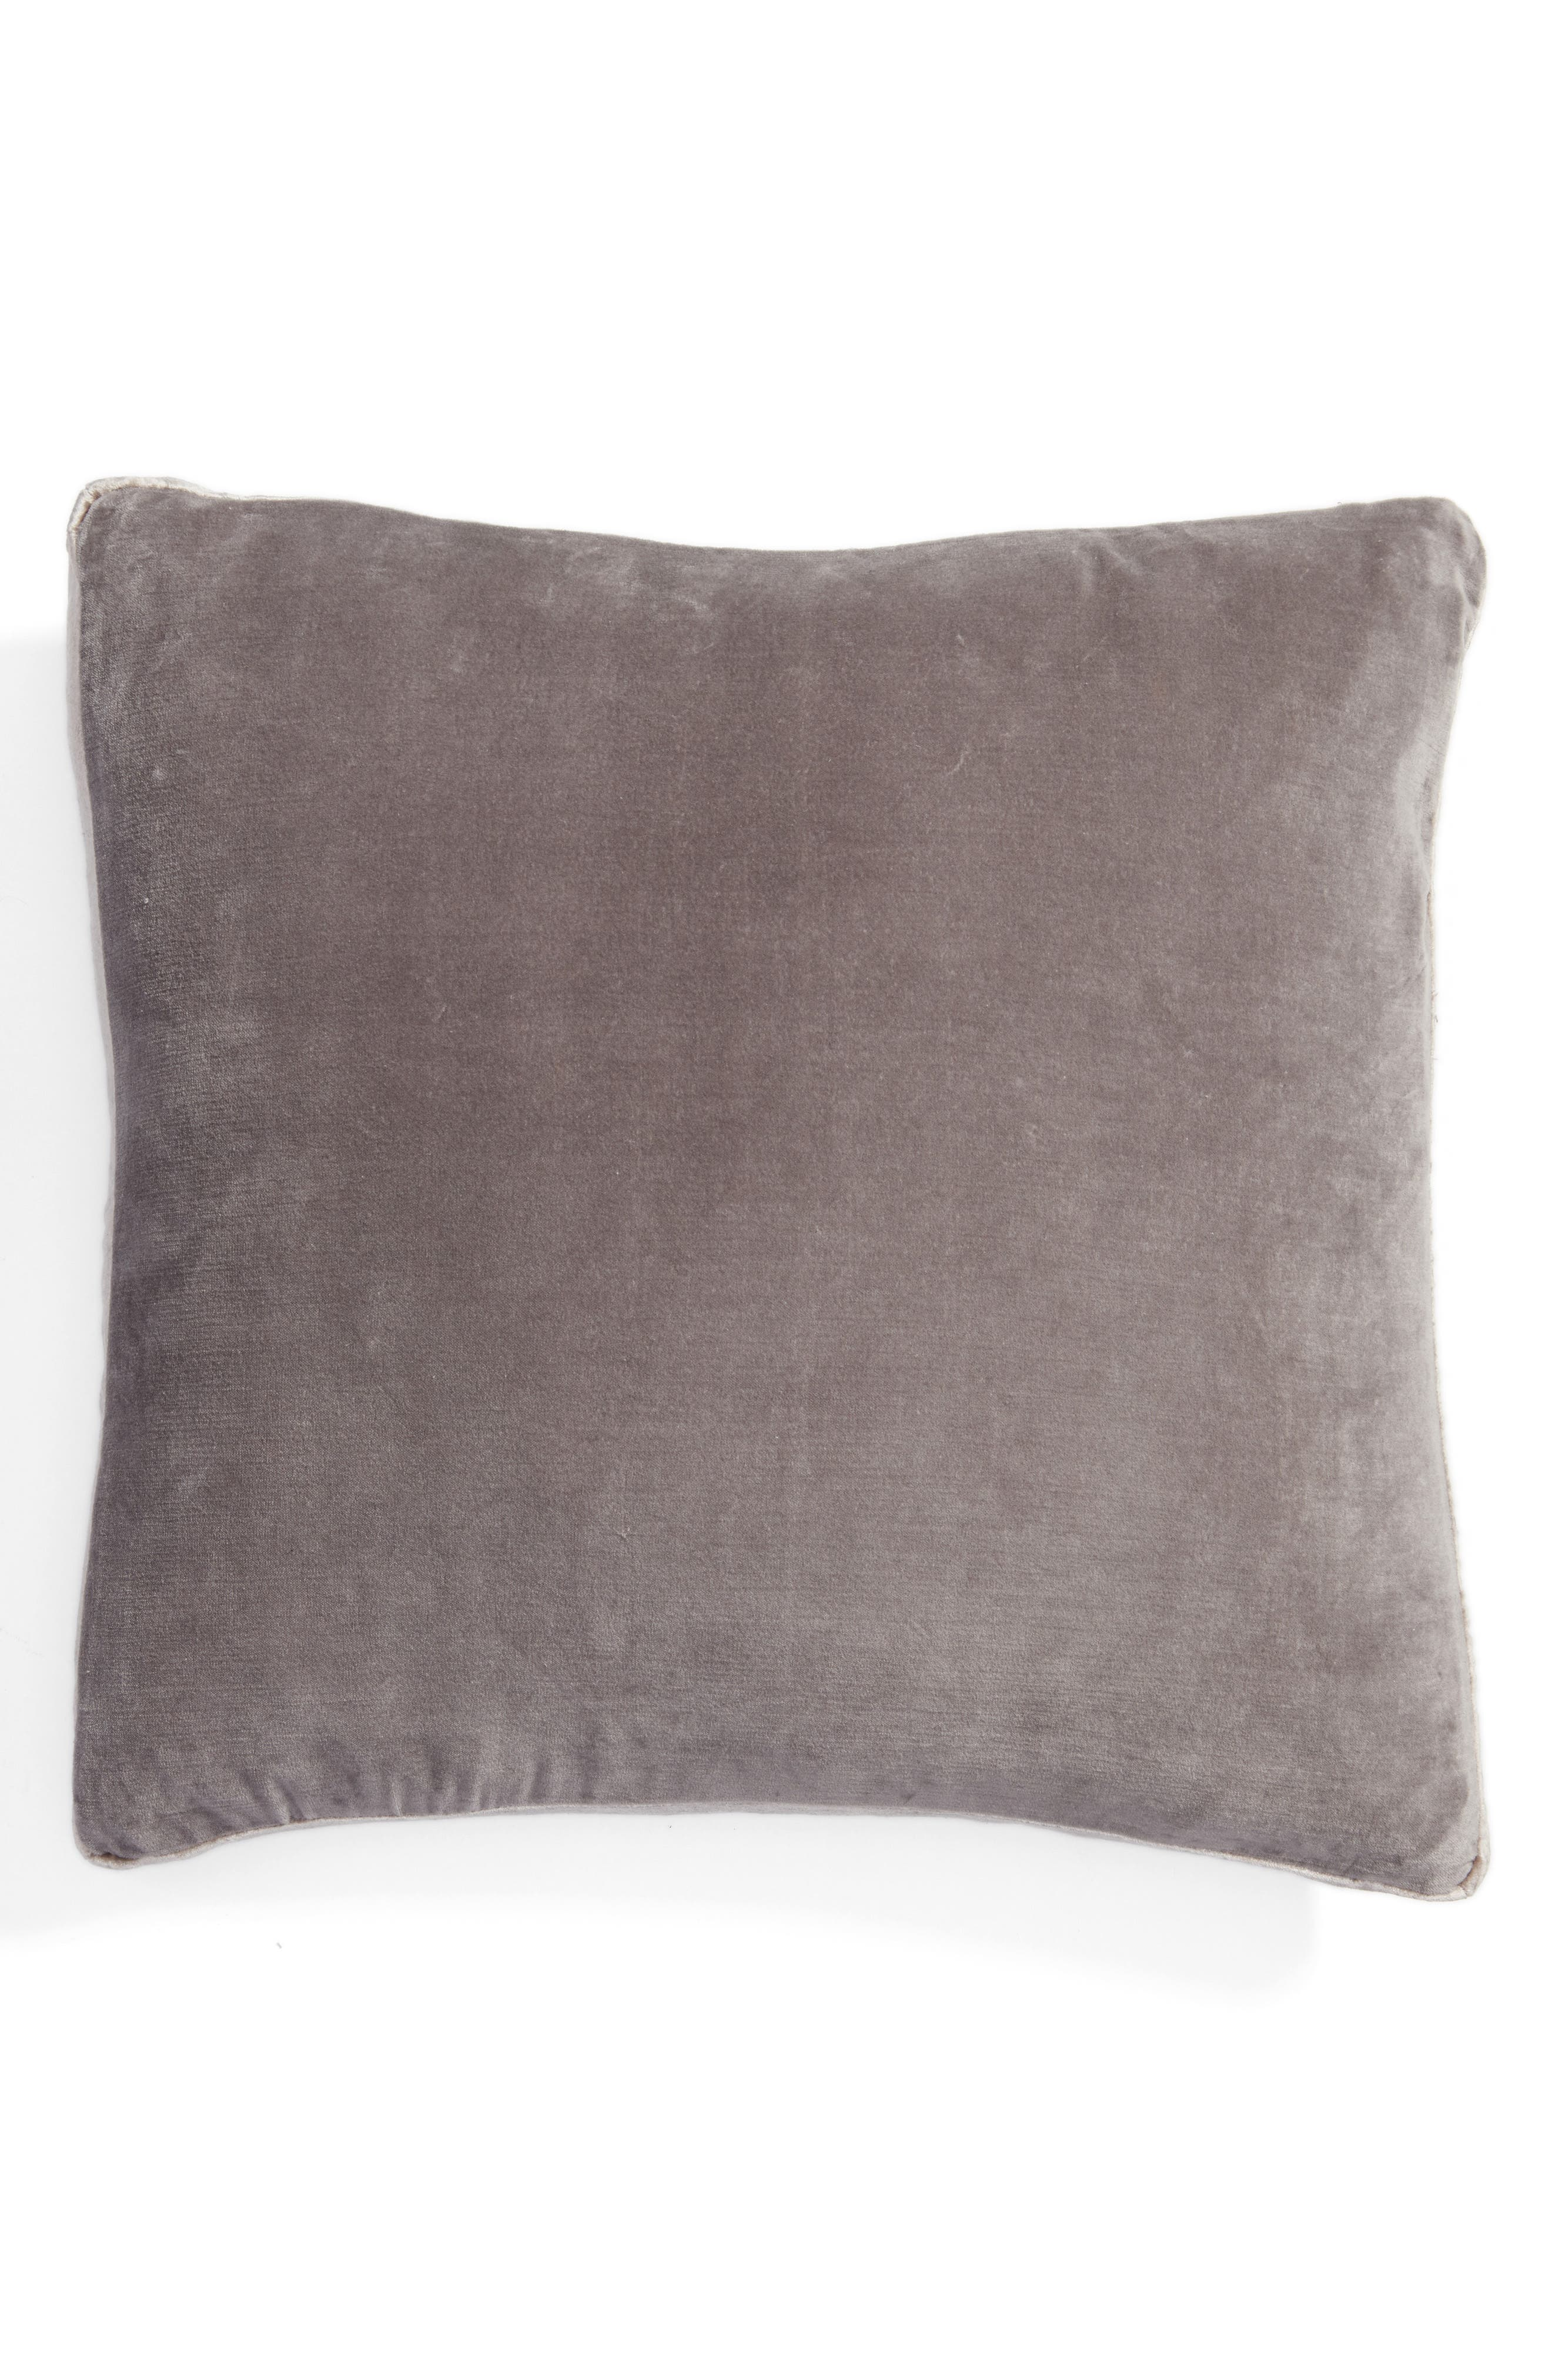 Nordstrom at Home Velvet Accent Pillow